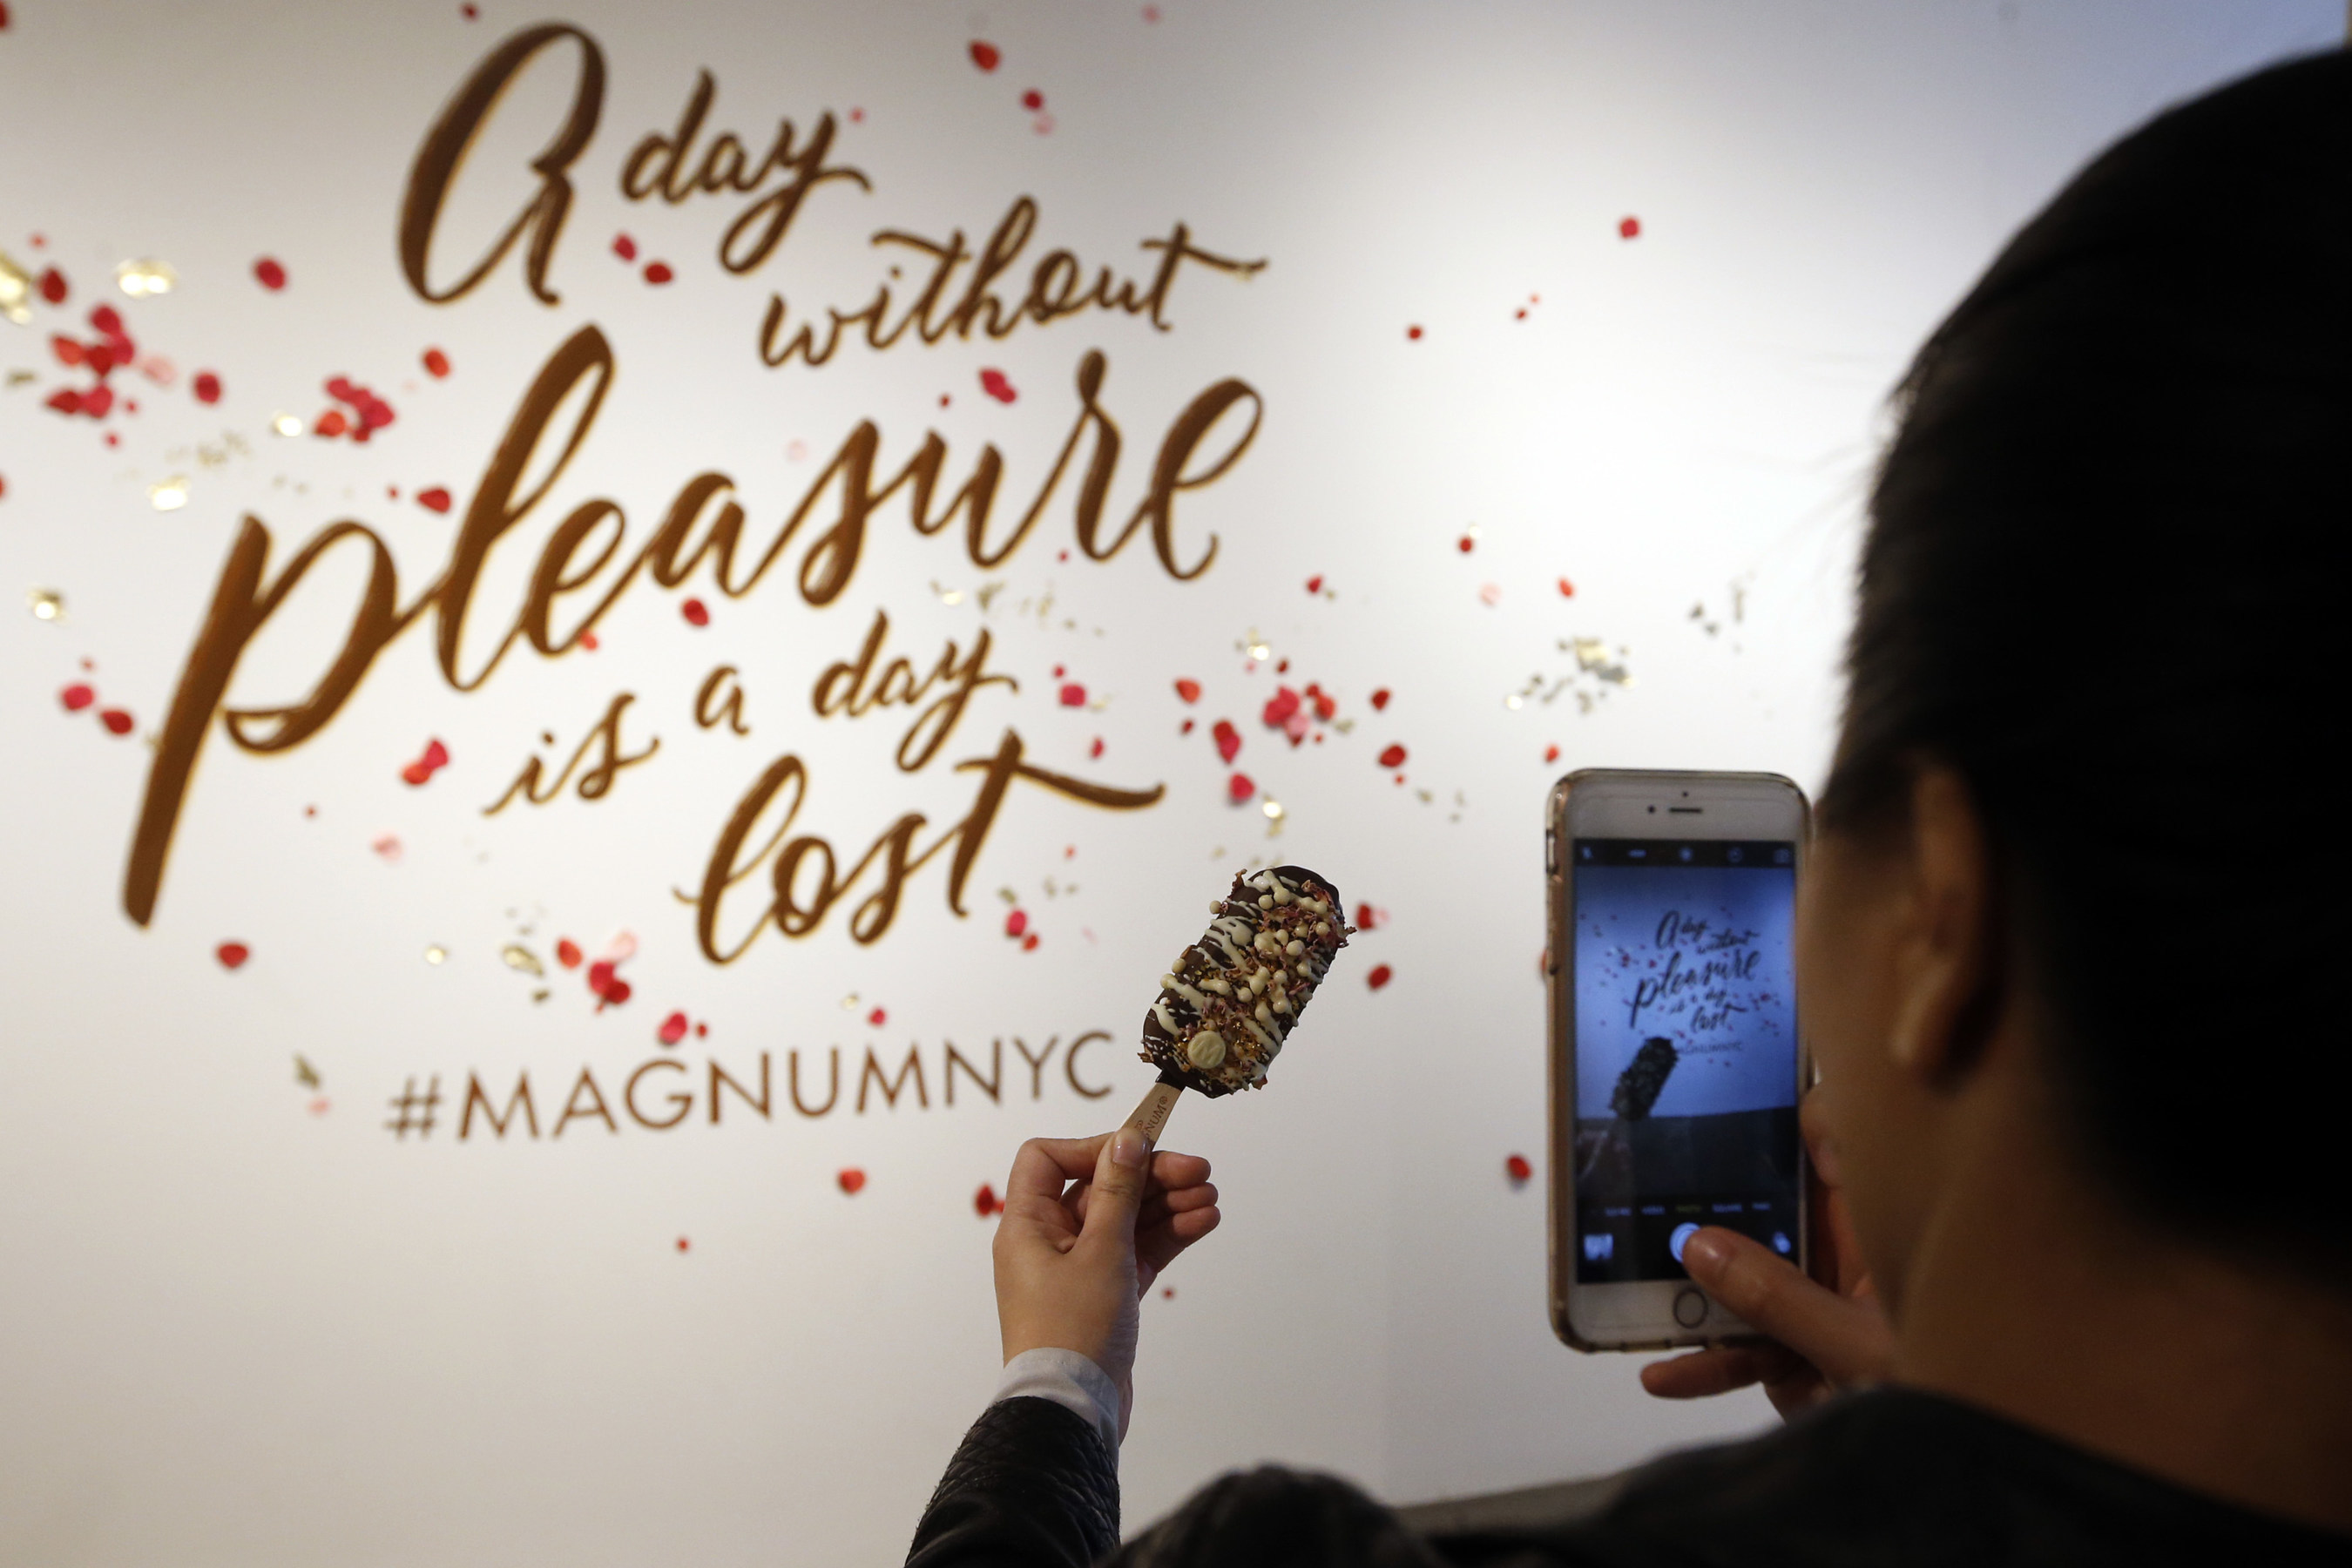 """A guest at MAGNUM New York captures a close-up photo of a custom MAGNUM Ice Cream bar. At the store's """"dipping bar,"""" guests can create custom MAGNUM bars with a selection of decadent ingredients, including rose petals, espresso sugar and gogi berries. This is the first U.S. storefront for MAGNUM Ice Cream and it's located at 134 Prince Street in SoHo; for more information, visit Facebook.com/MAGNUM. (Photo by Jason DeCrow for MAGNUM)"""